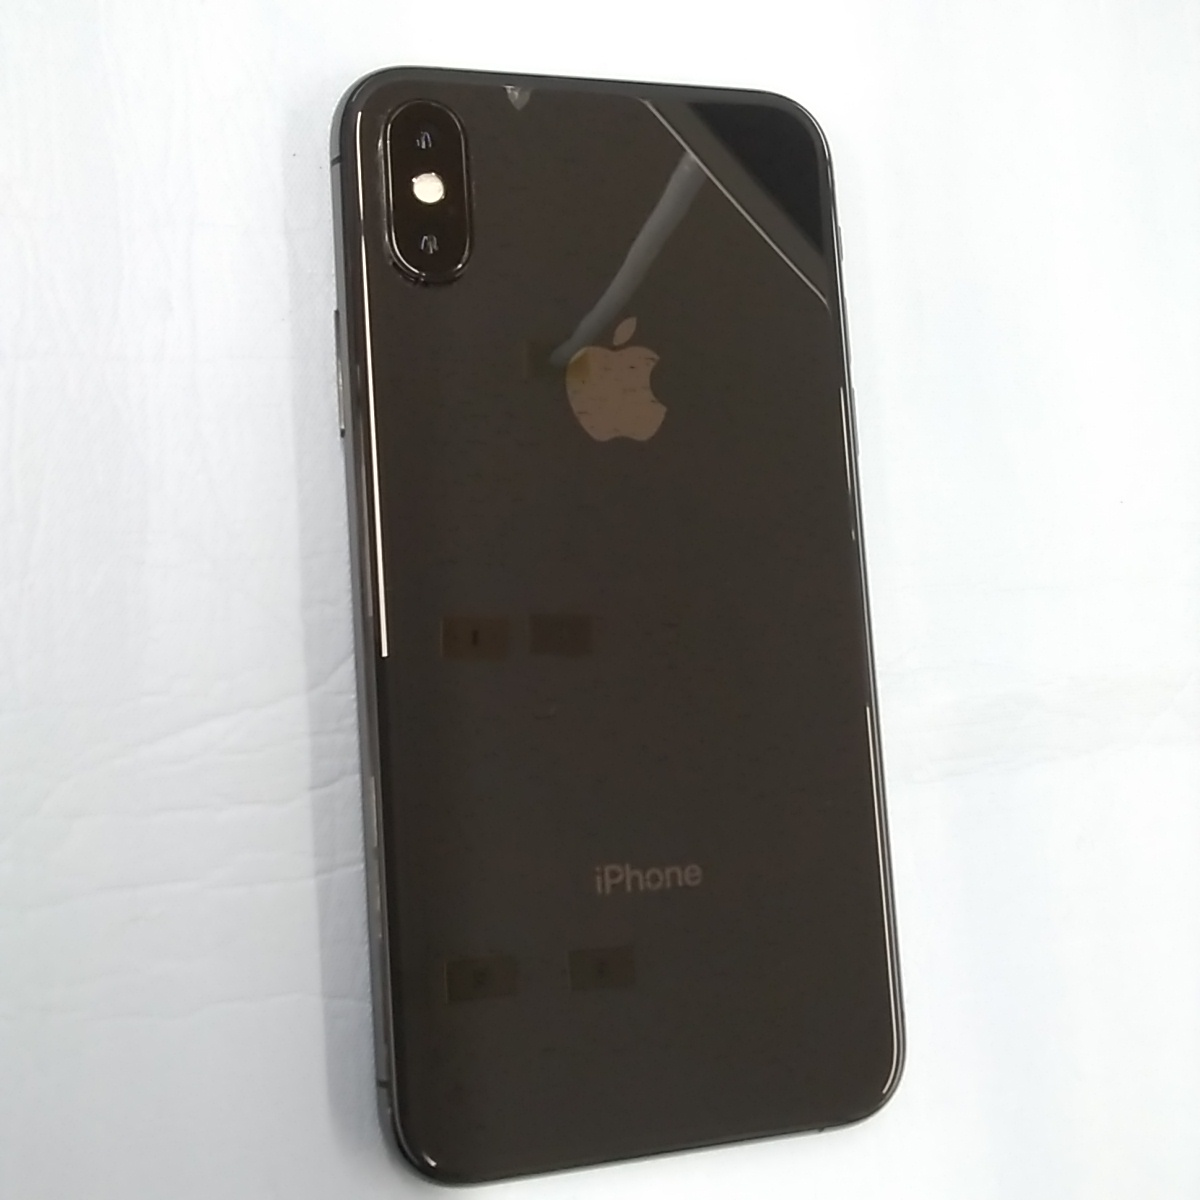 IPHONEXS|APPLE